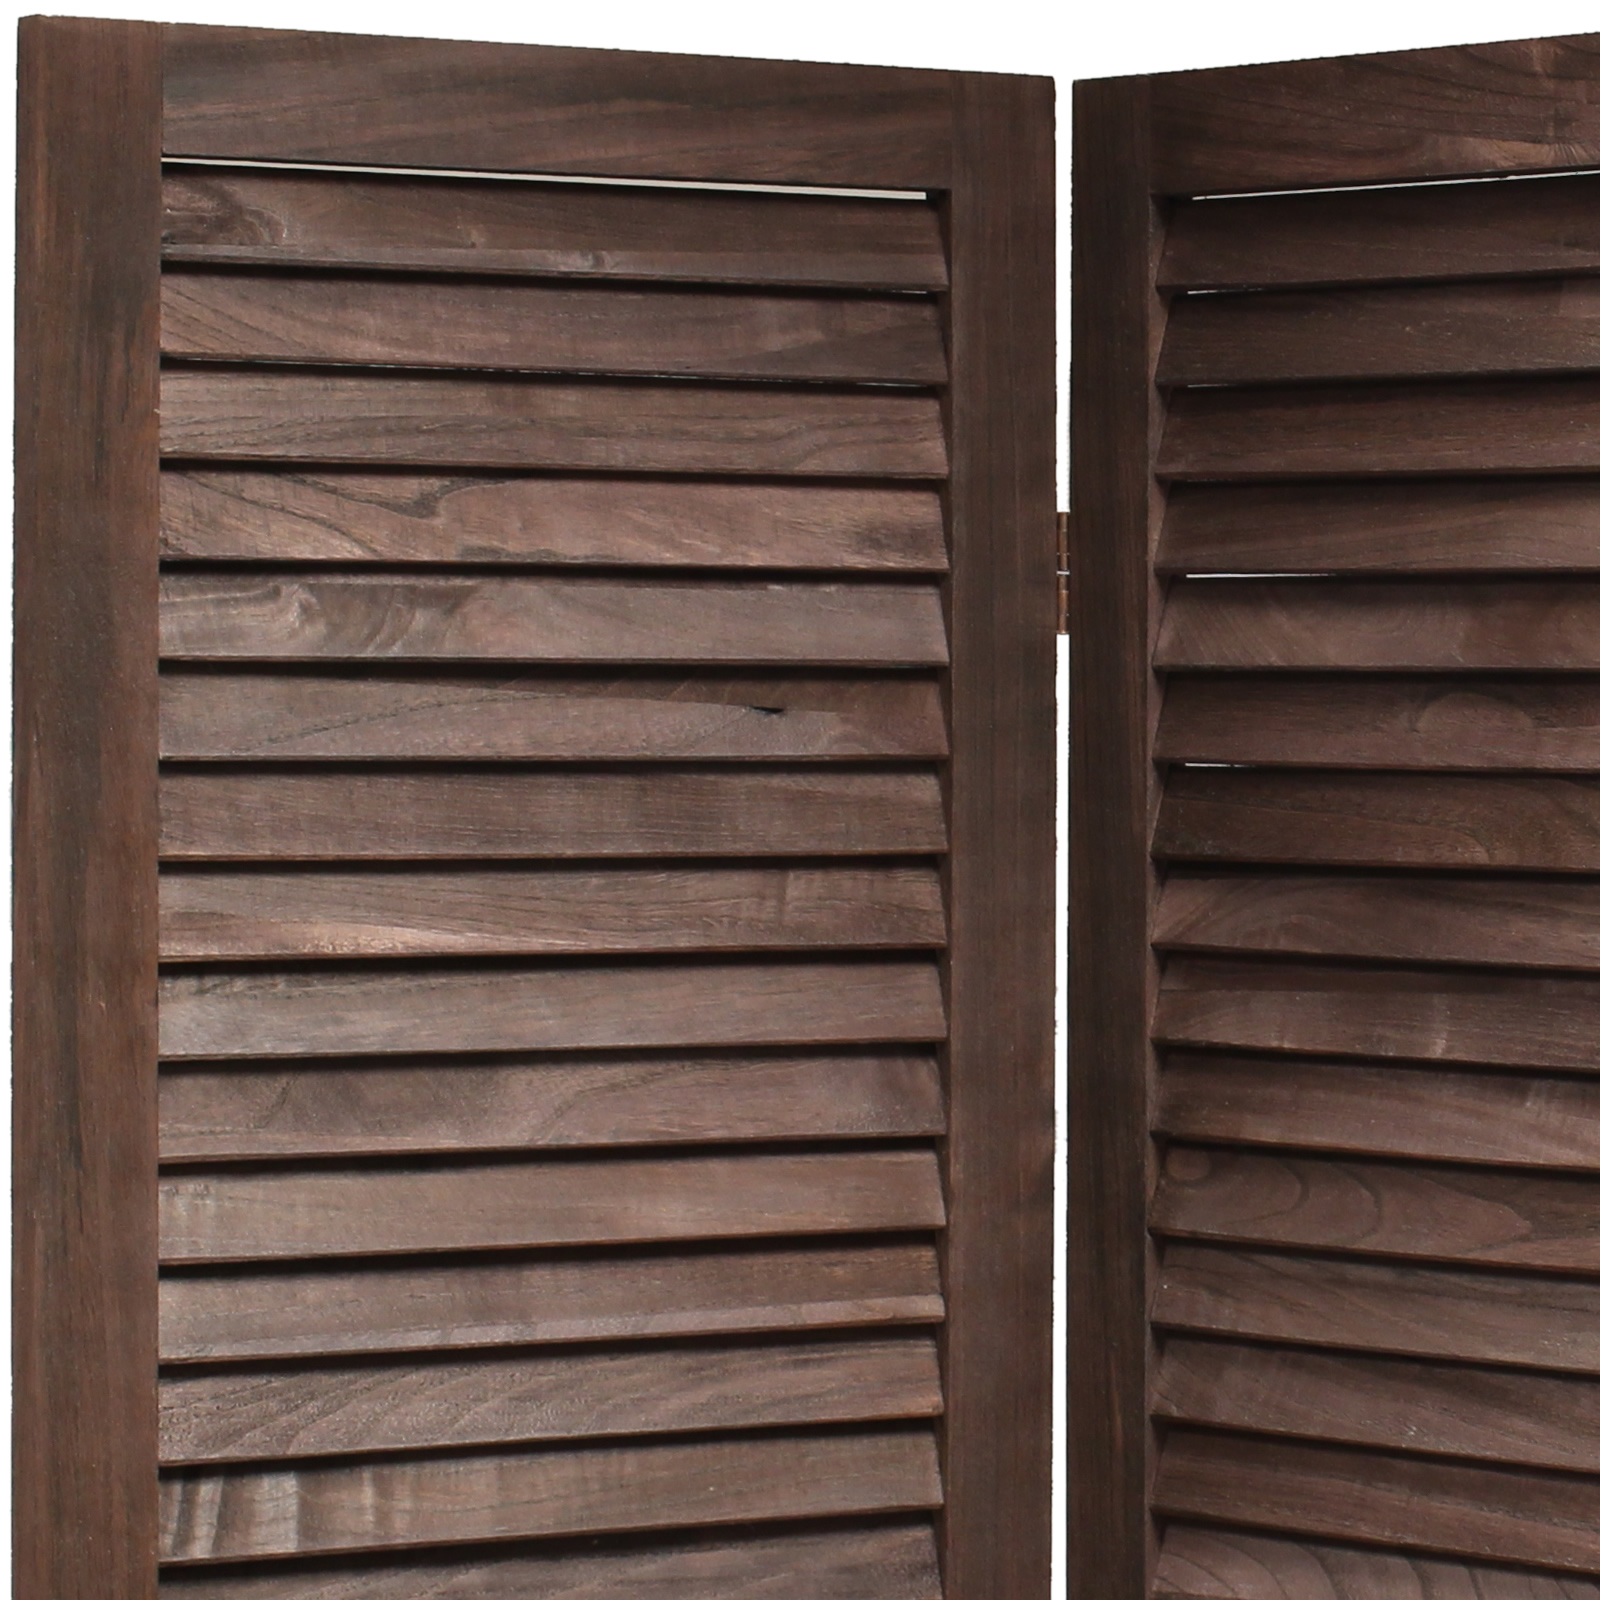 Sentinel WOODEN SLAT ROOM DIVIDER PRIVACY SCREEN/PARTITION/BLIND WIDE  SHABBY CHIC VINTAGE